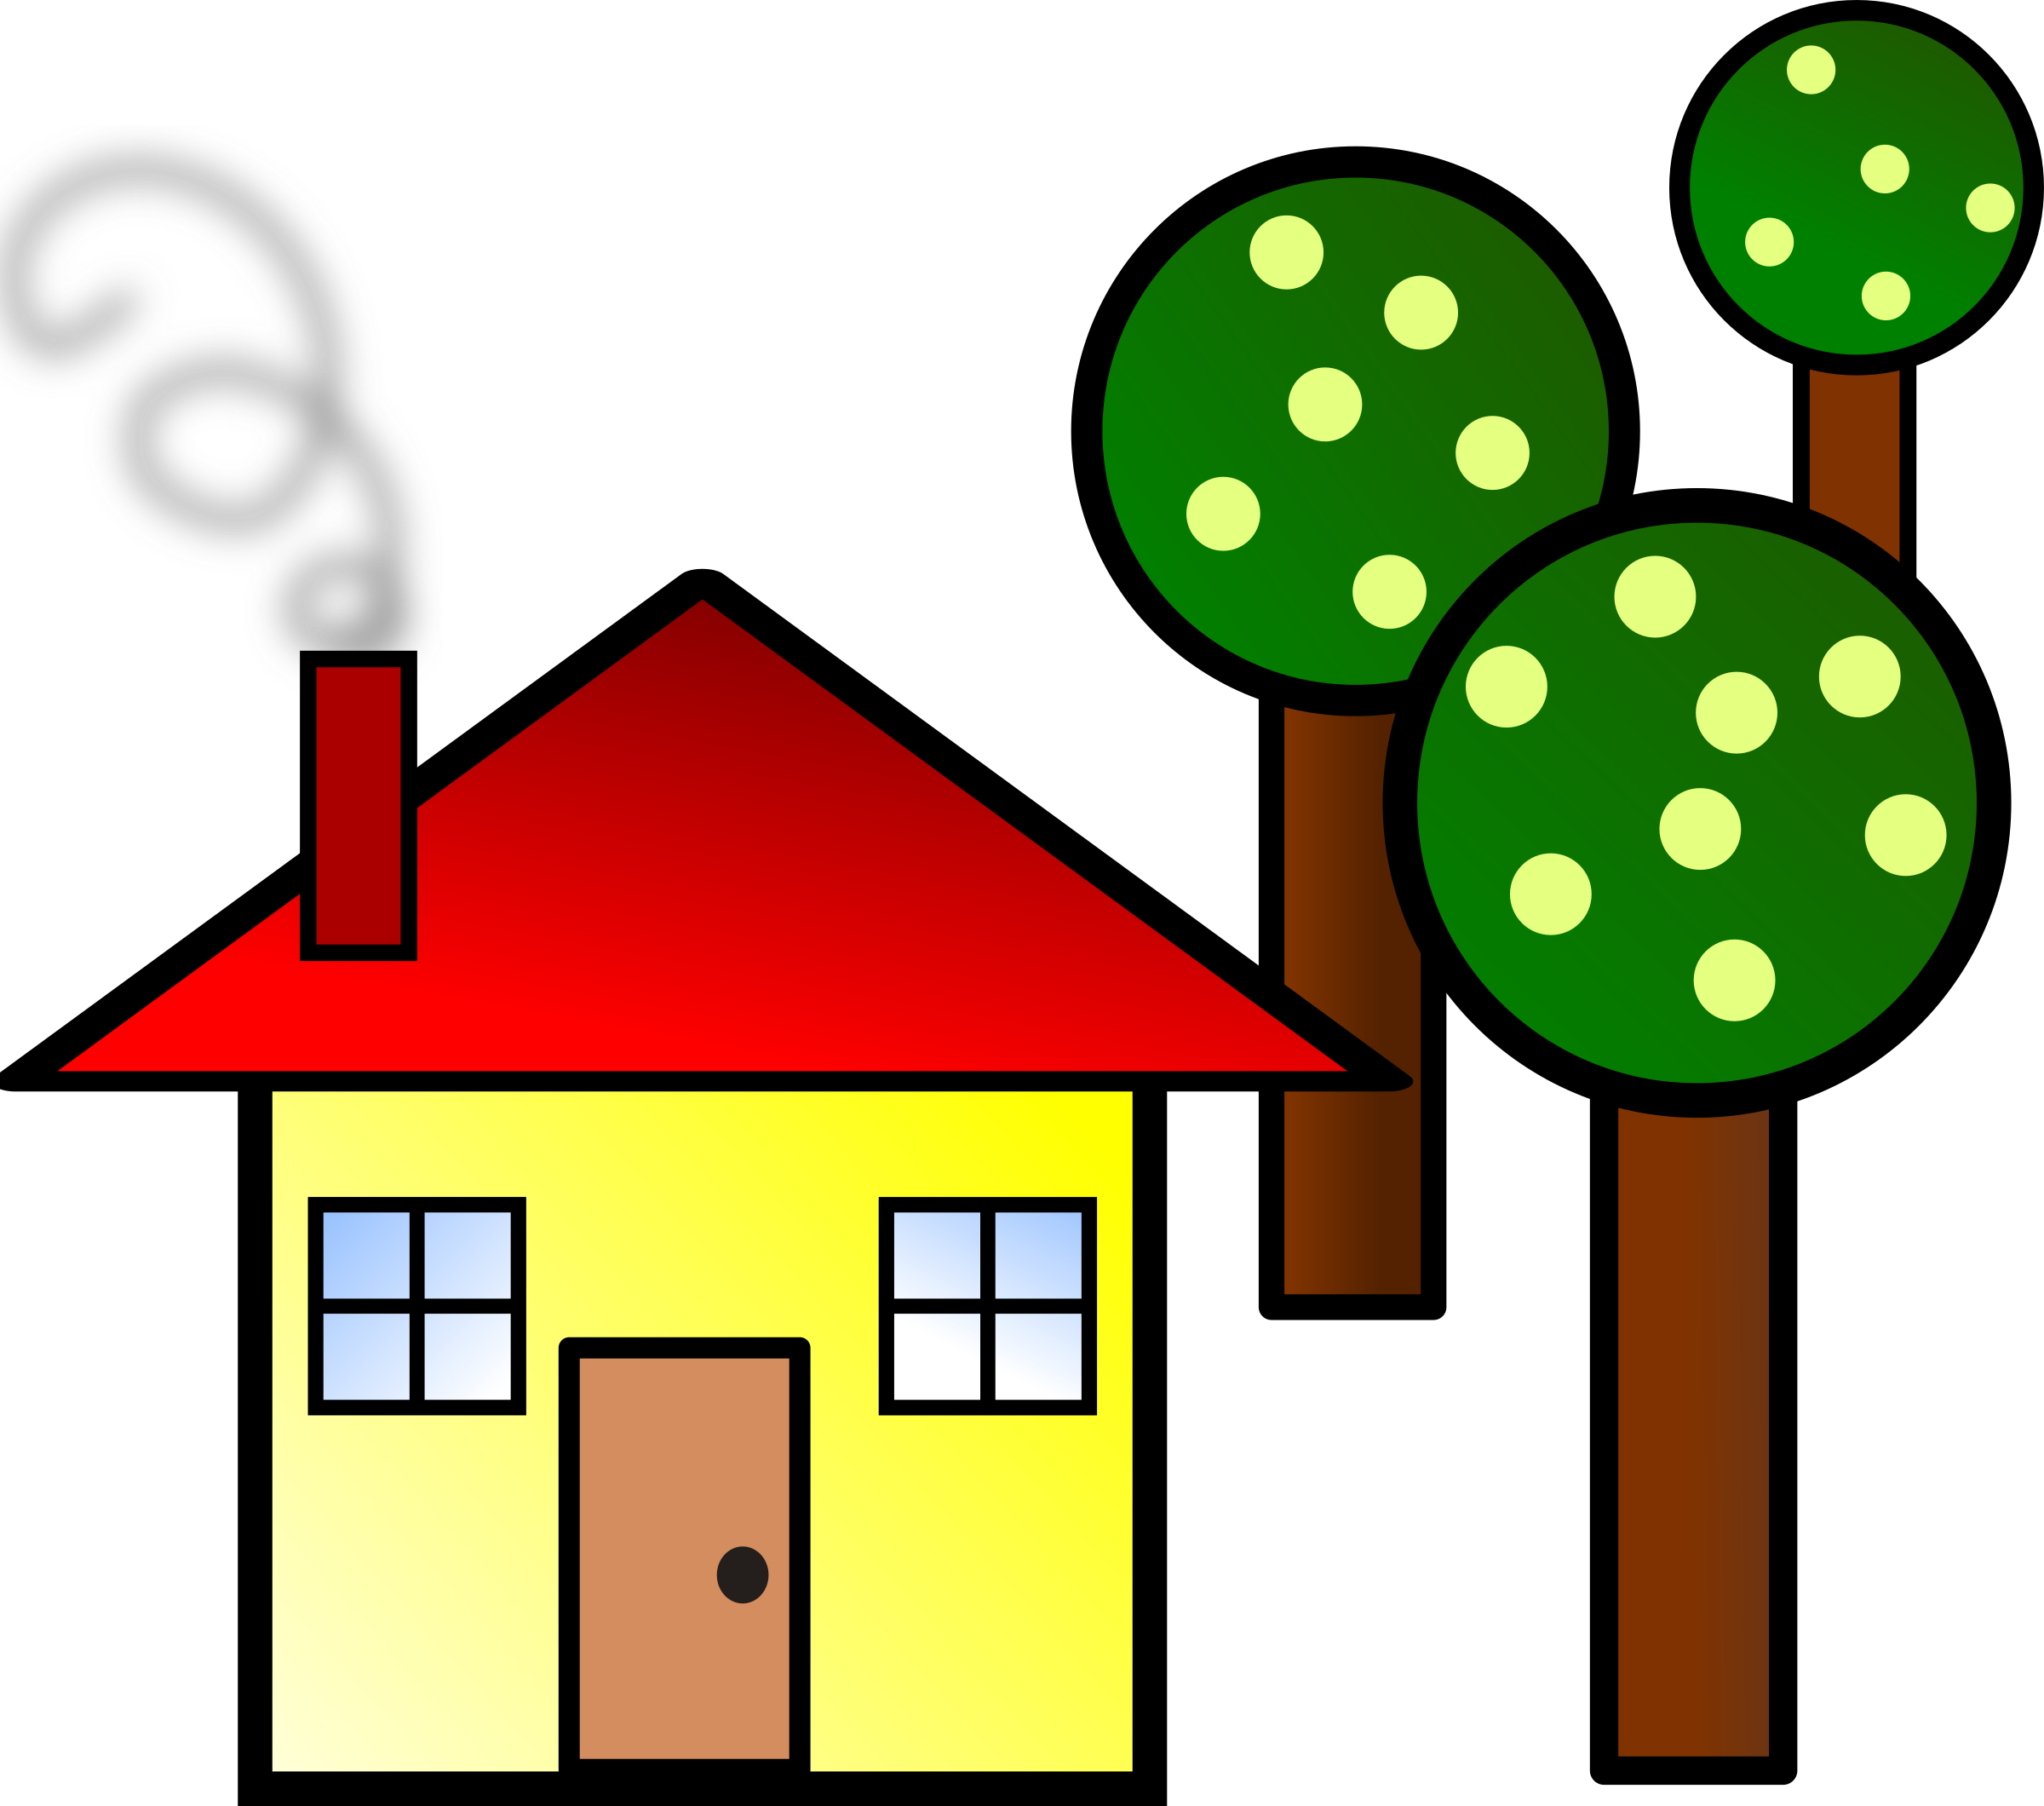 2400x2120 House With Trees By @kattekrab, Simple House, On @openclipart